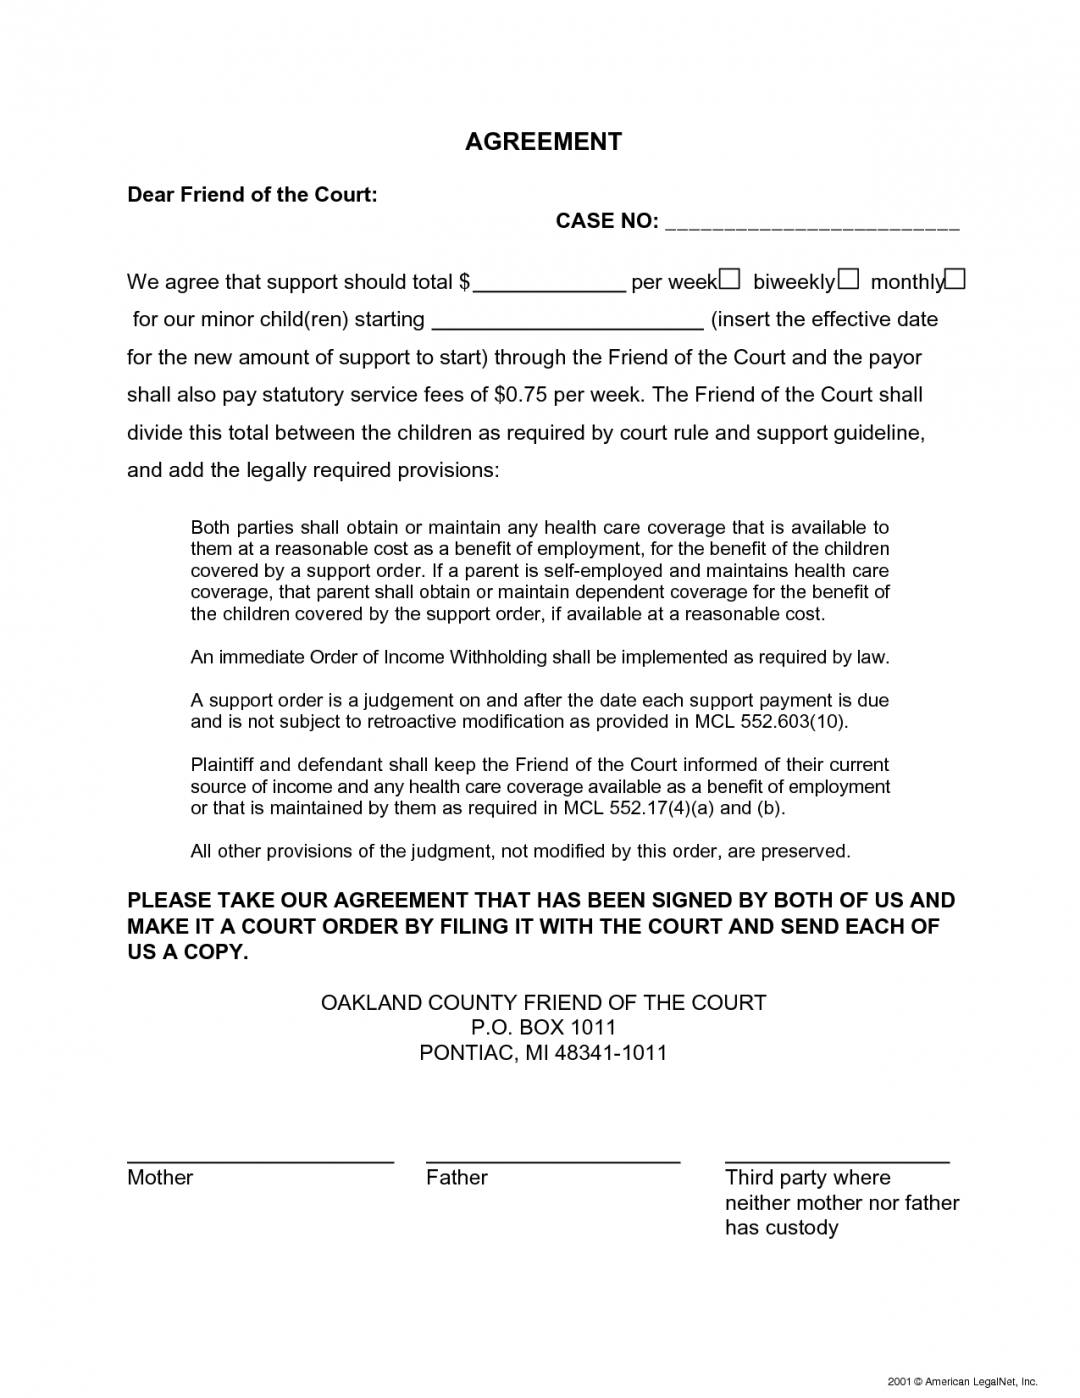 Child Support Modification Letter Template - 24 Awesome Sample Child Support Agreement Letter Template